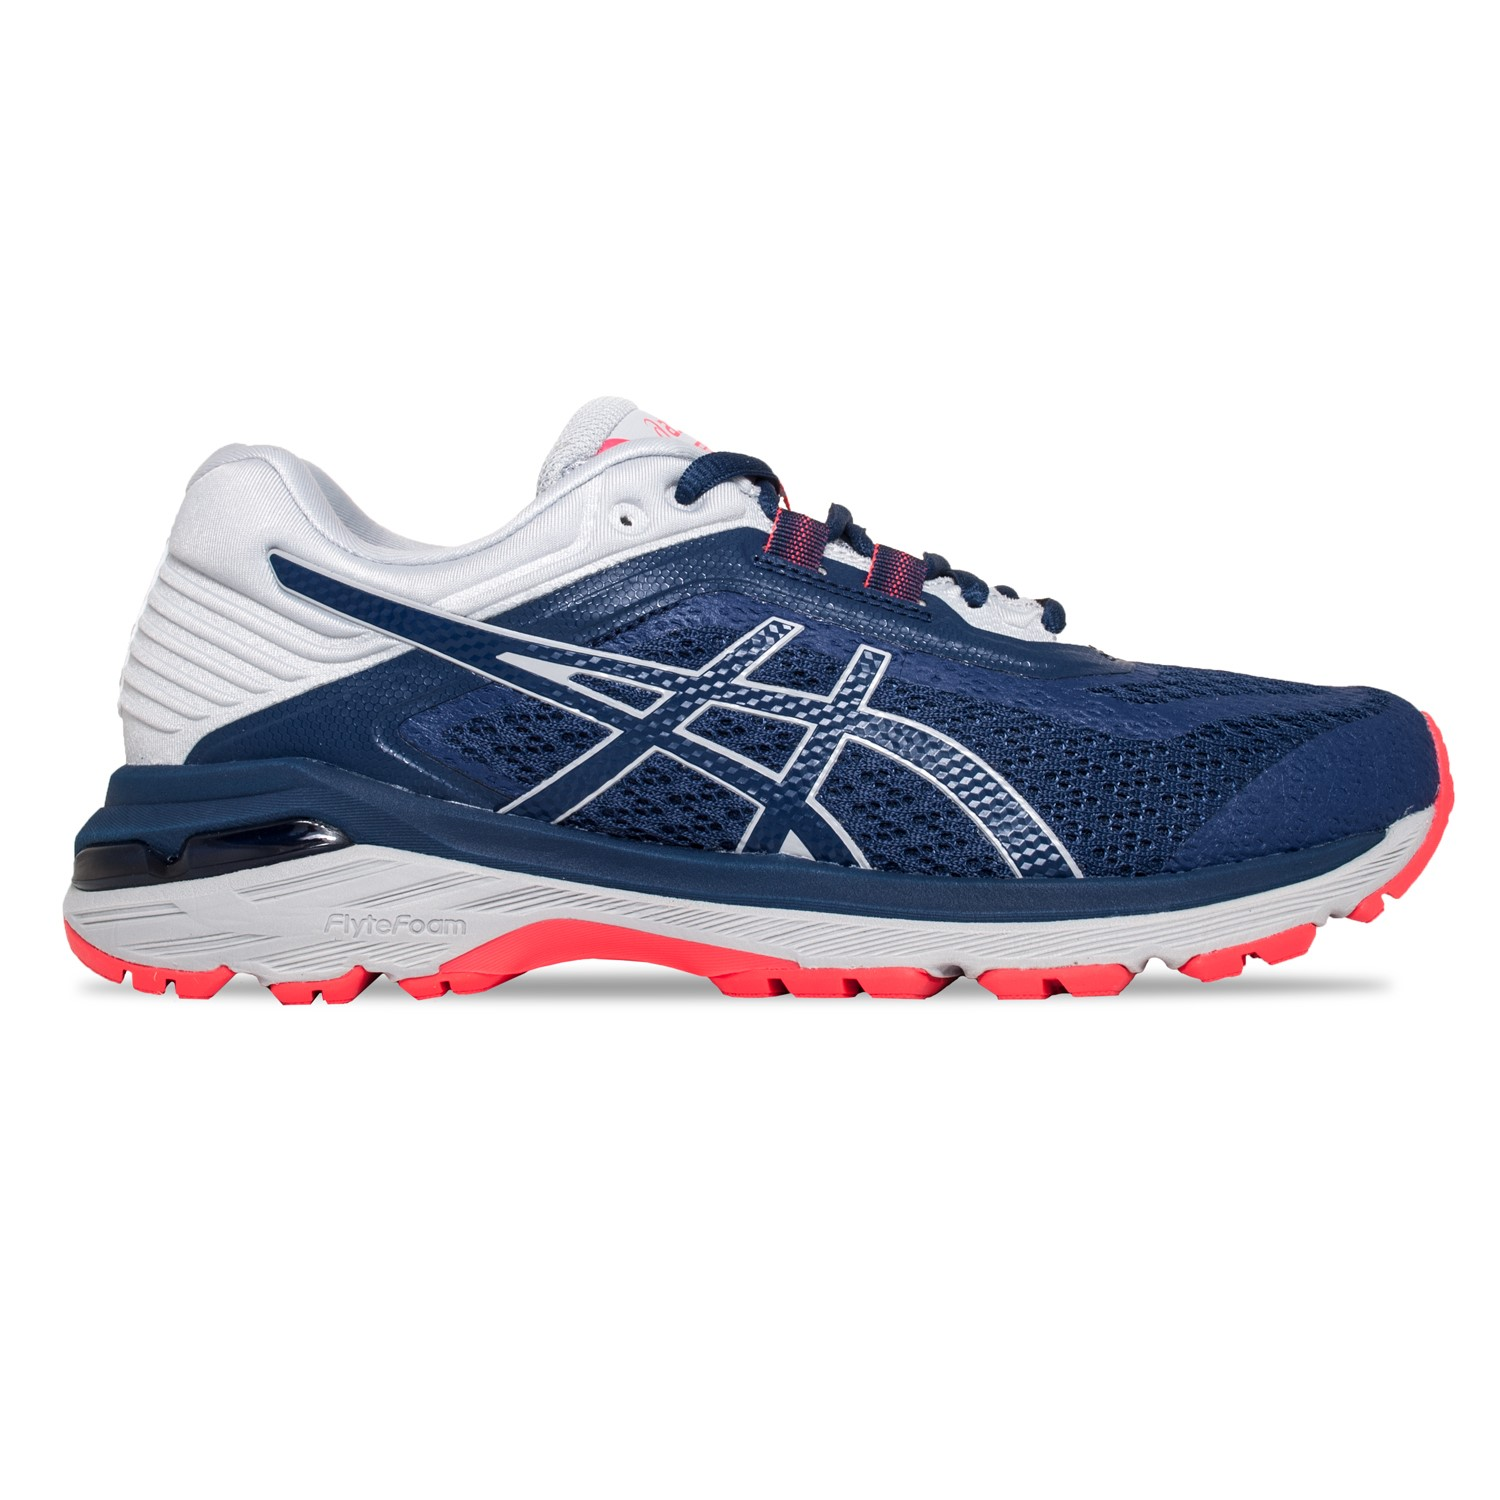 low priced fbb63 c84ab Asics GT-2000 6 Trail - Womens Trail Running Shoes